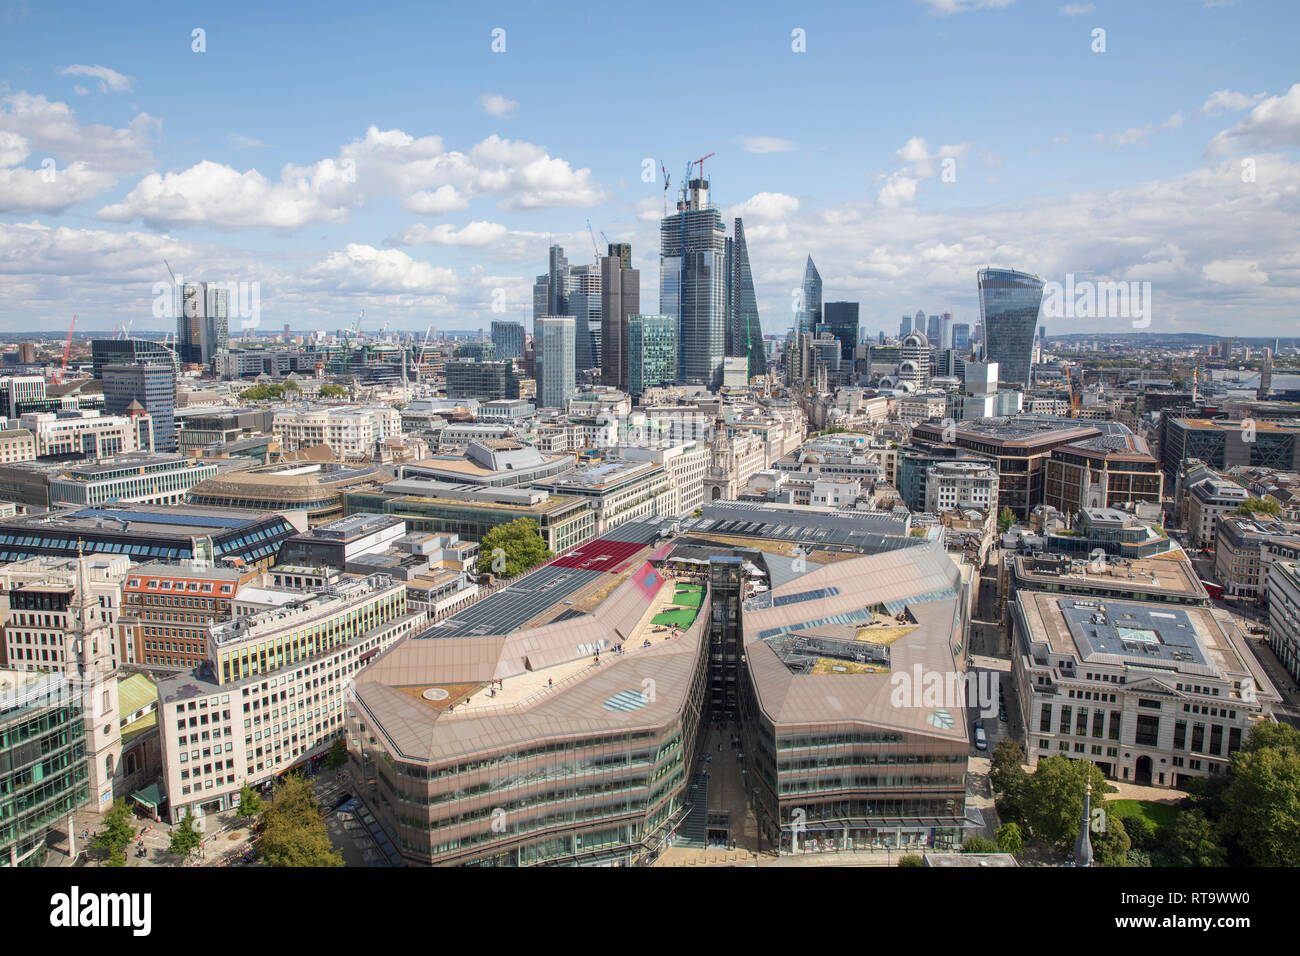 View of the City of London, as seen from the Golden Gallery of St. Paul's Cathedral. One New Change is in the foreground. - Stock Image